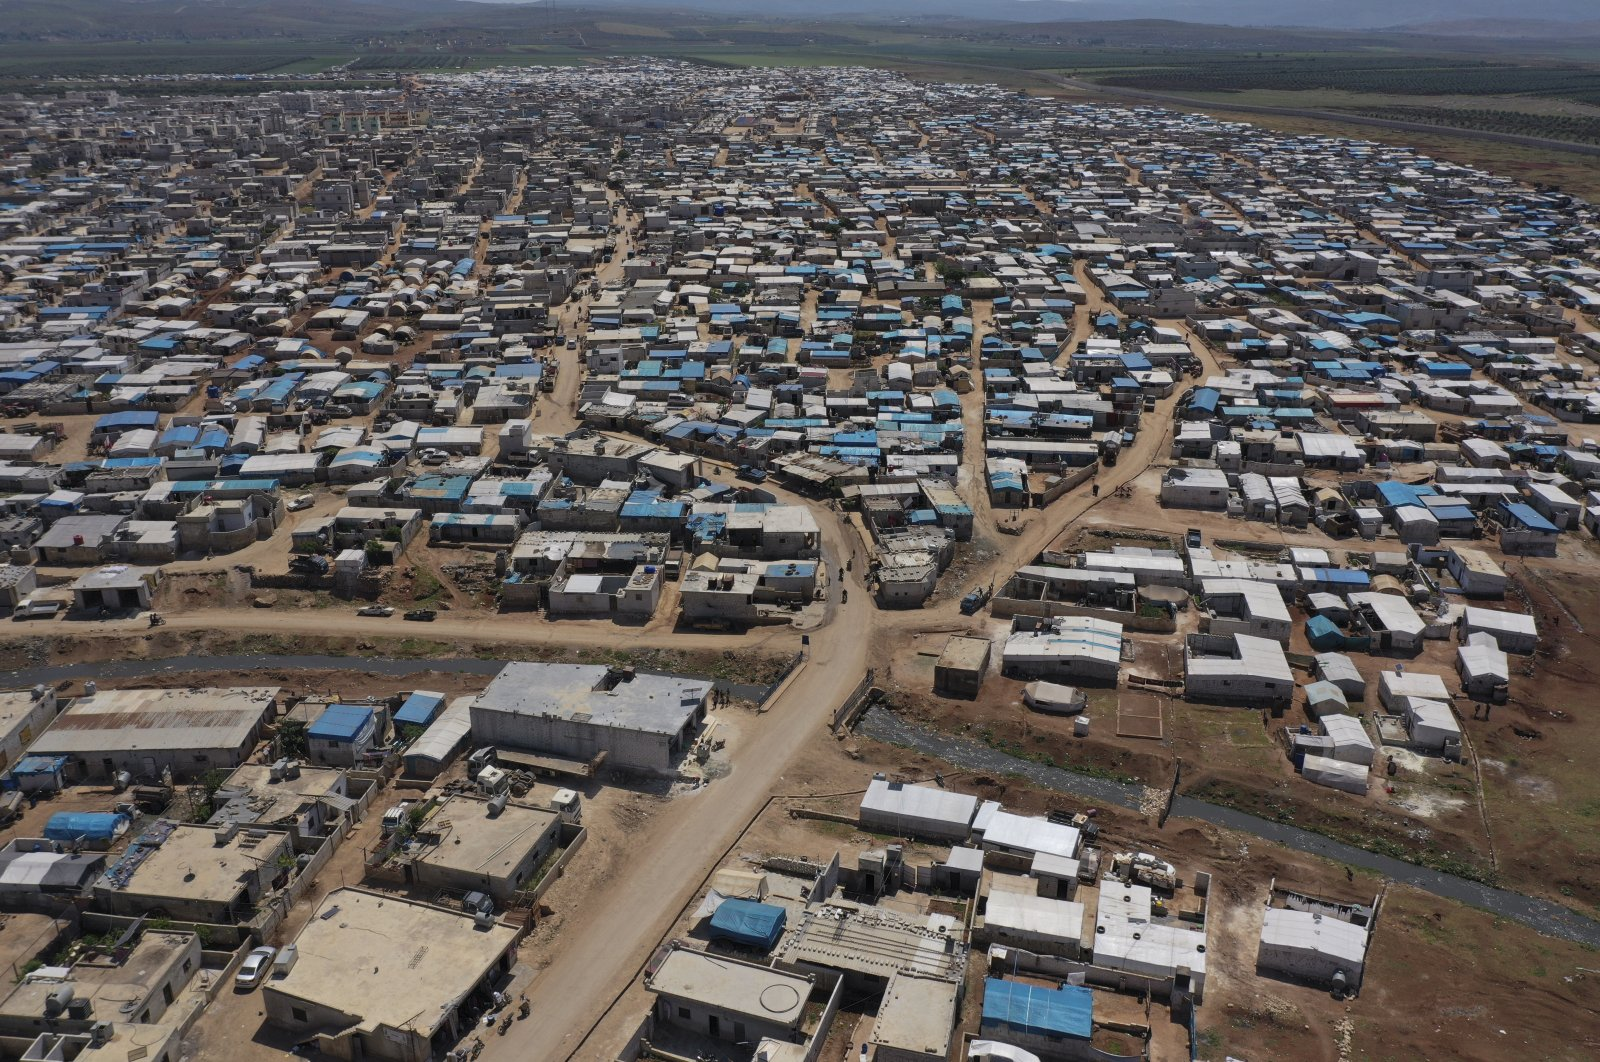 A large refugee camp on the Syrian side of the border with Turkey, near the town of Atma, in Idlib province, April 19, 2020.